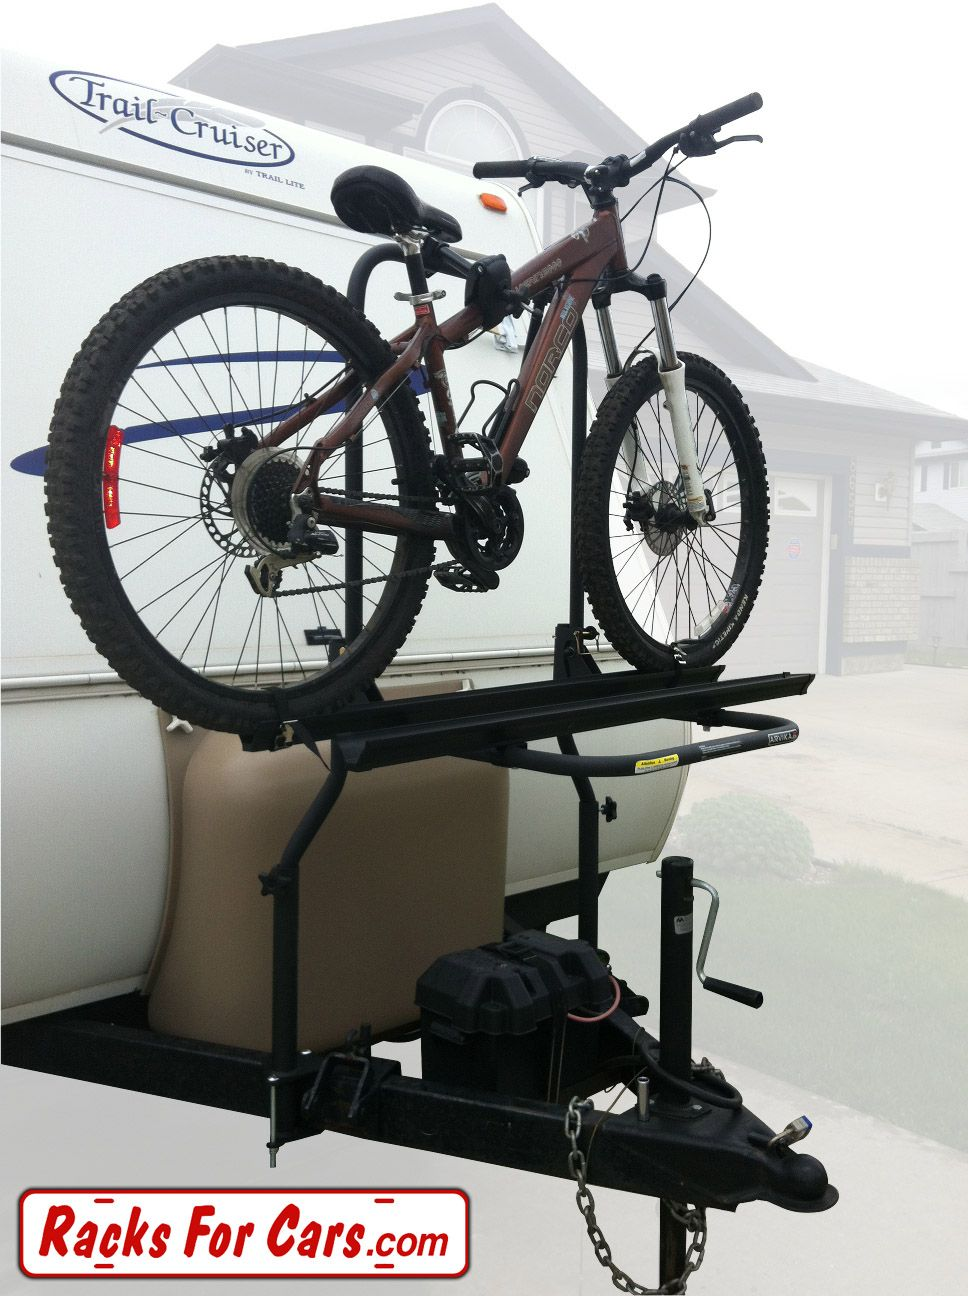 Arvika Rv Bike Racks Carry Your Bicycles On Rvs And Fifth Wheels